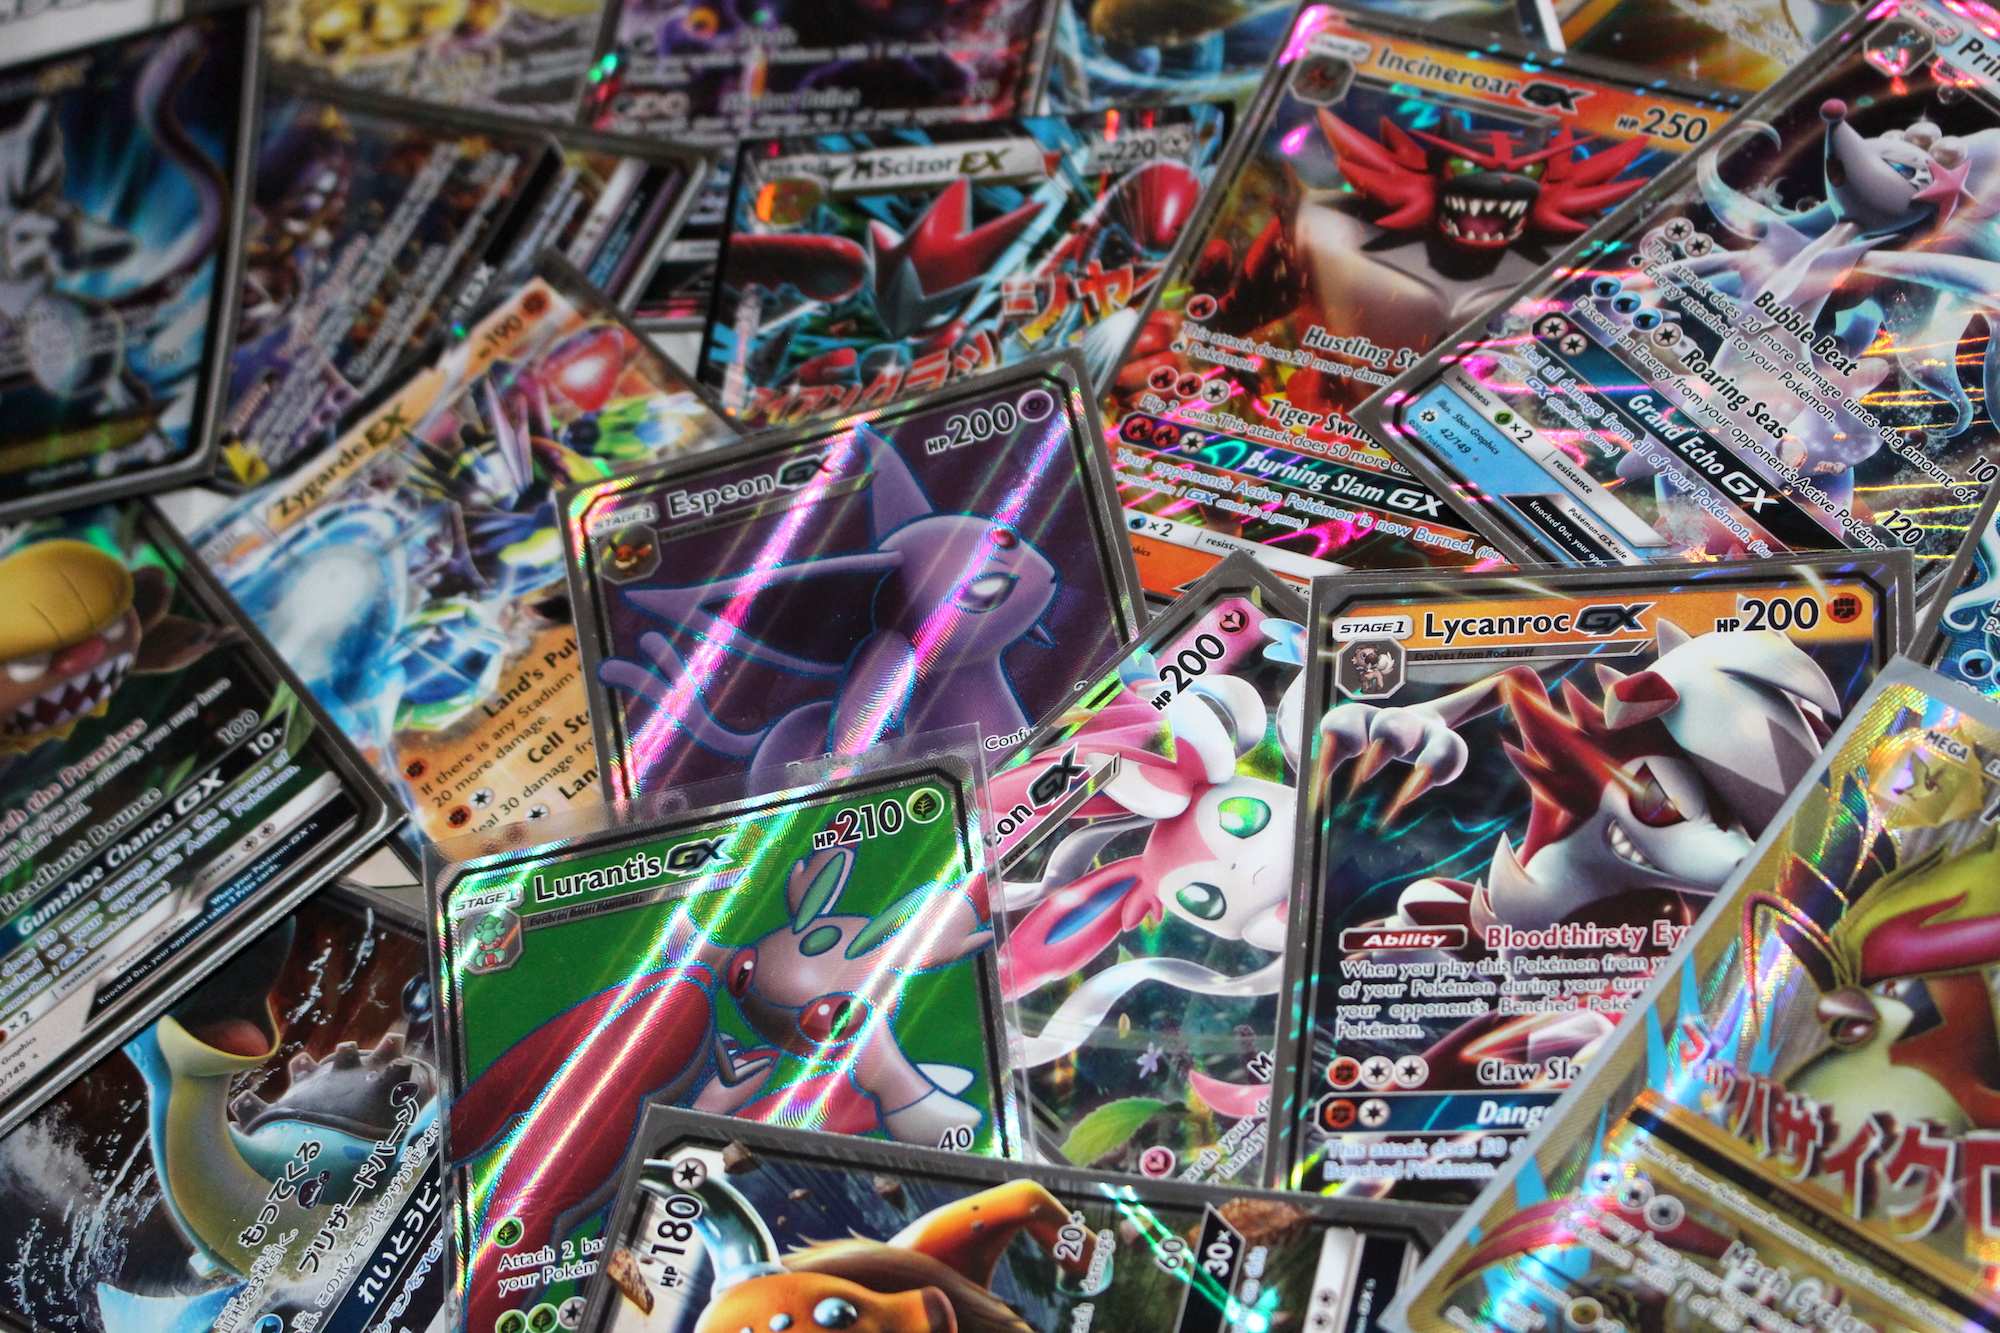 Getting Started With The Pokémon Trading Card Game - Guide